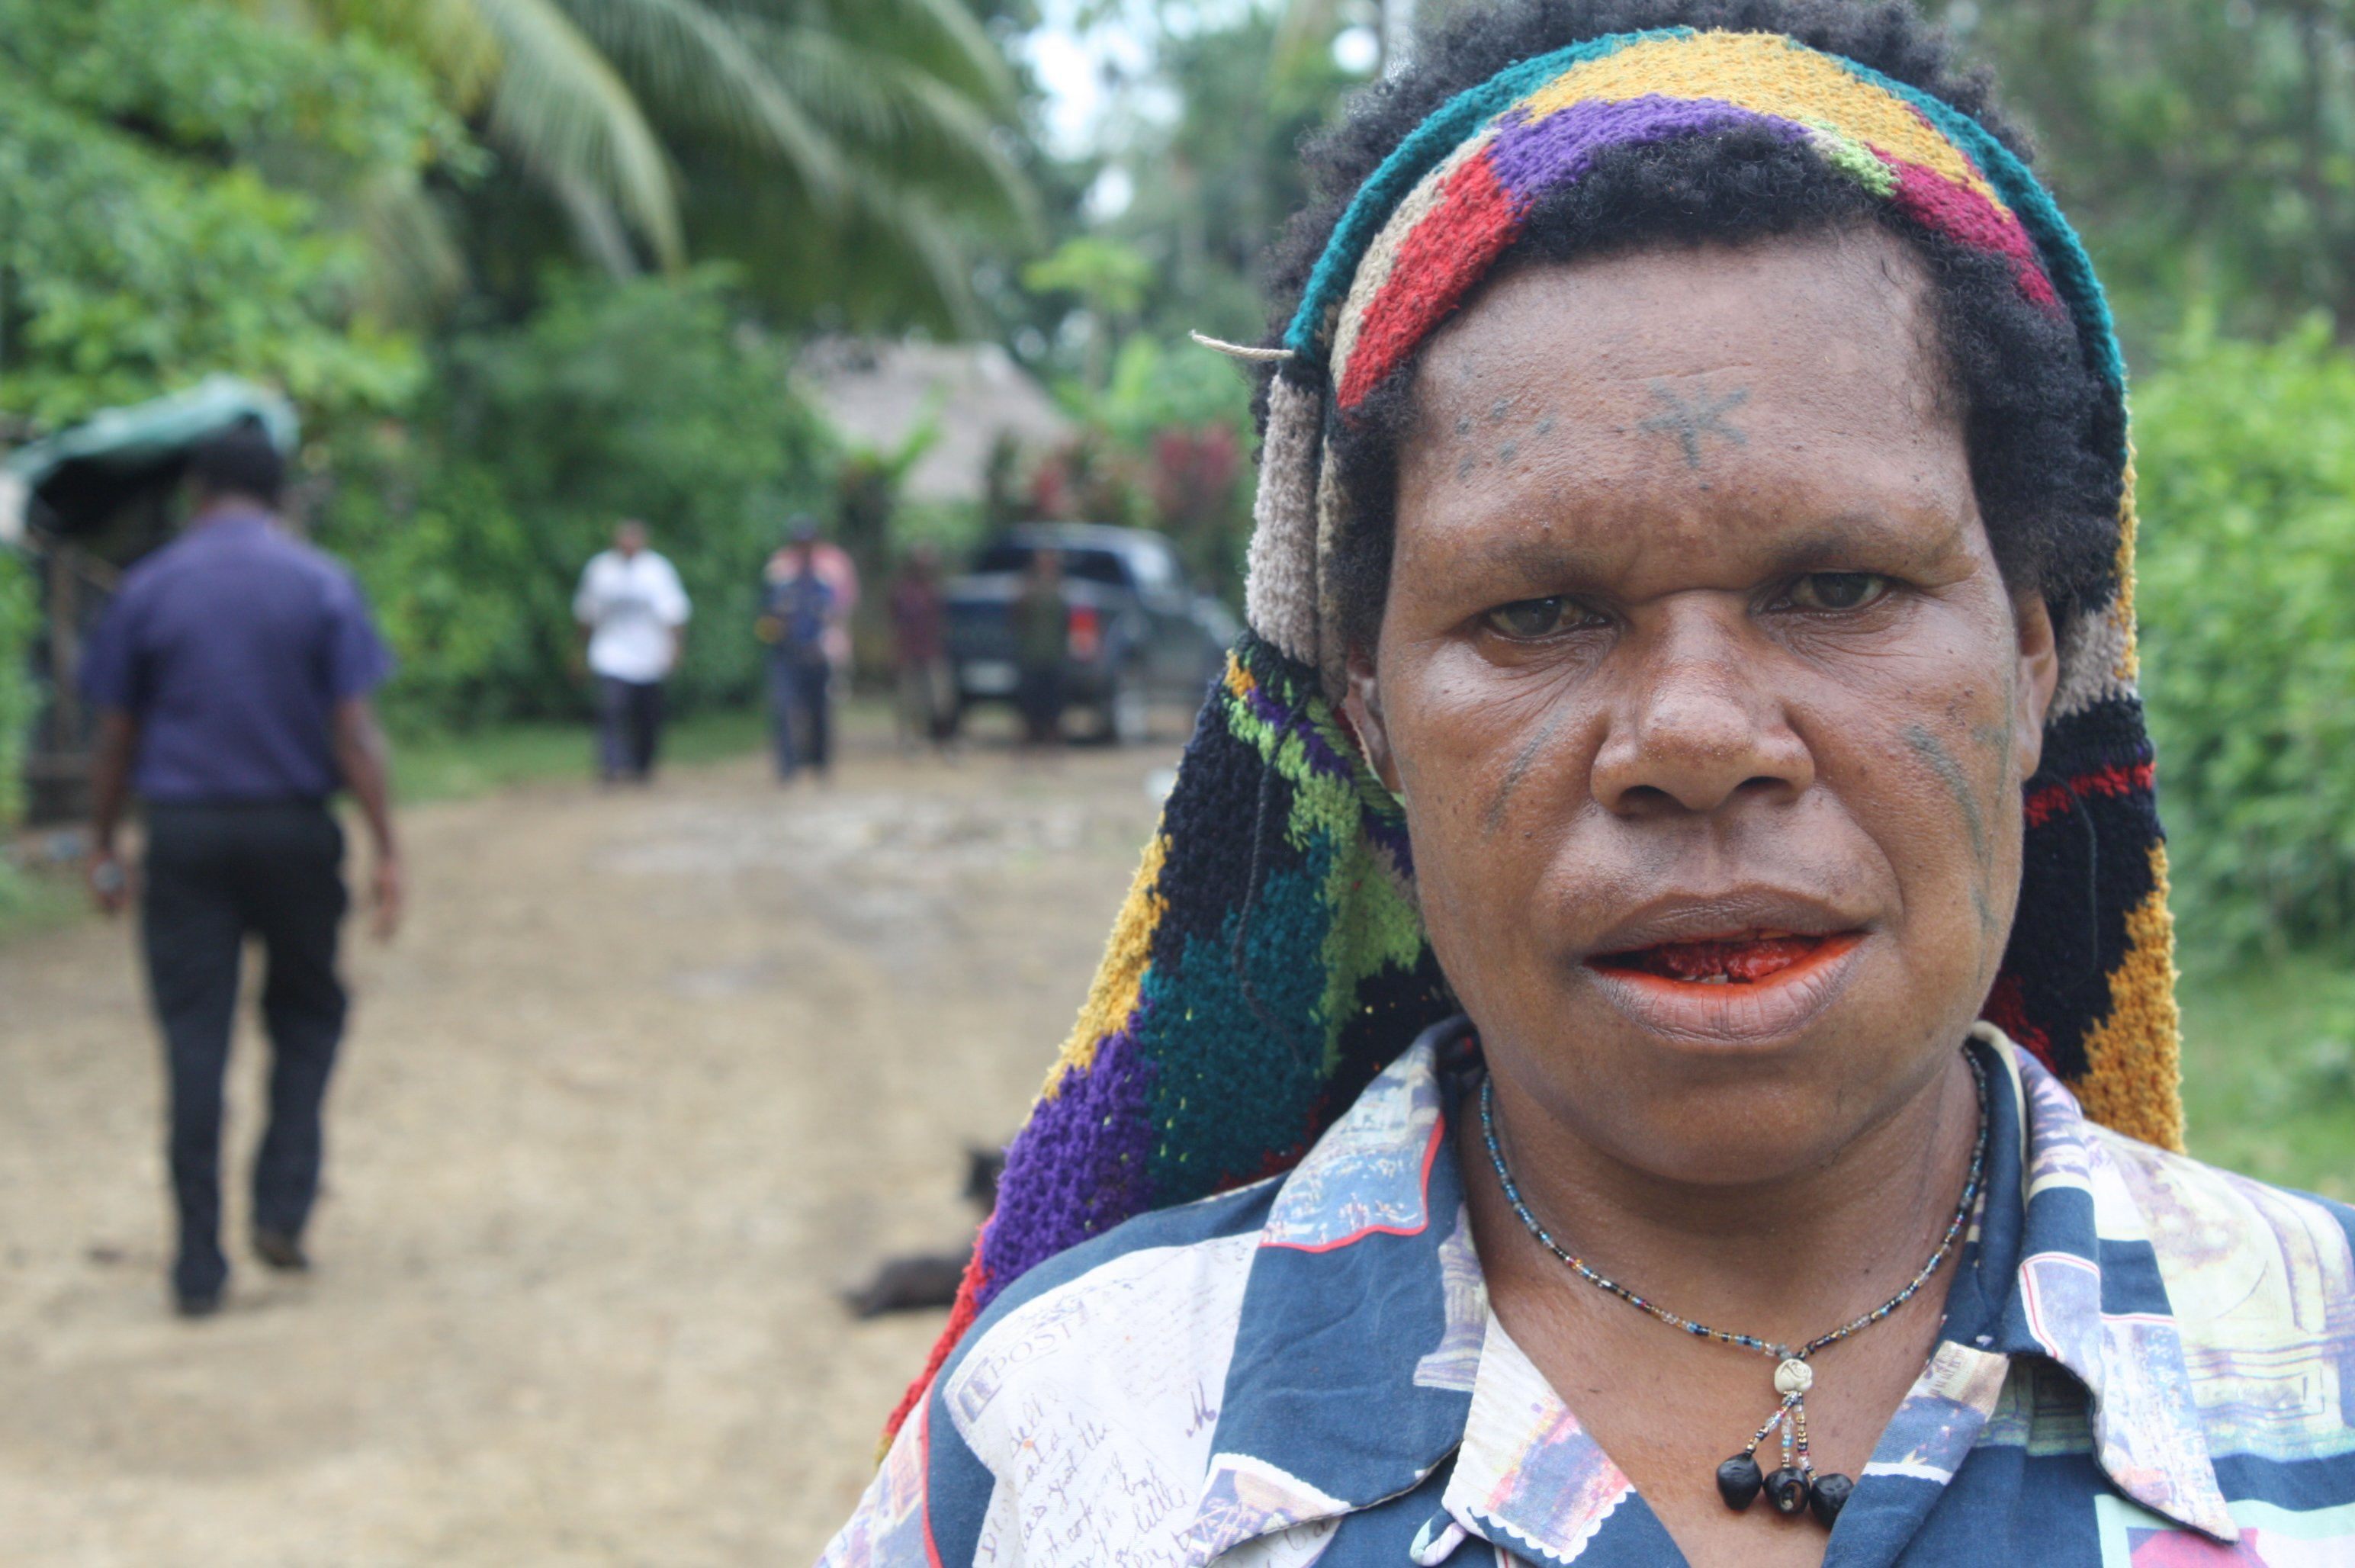 A woman outside the provincial capital of Madang. The native population is largely Melanesian and Papuan but is divided into many distinct cultures